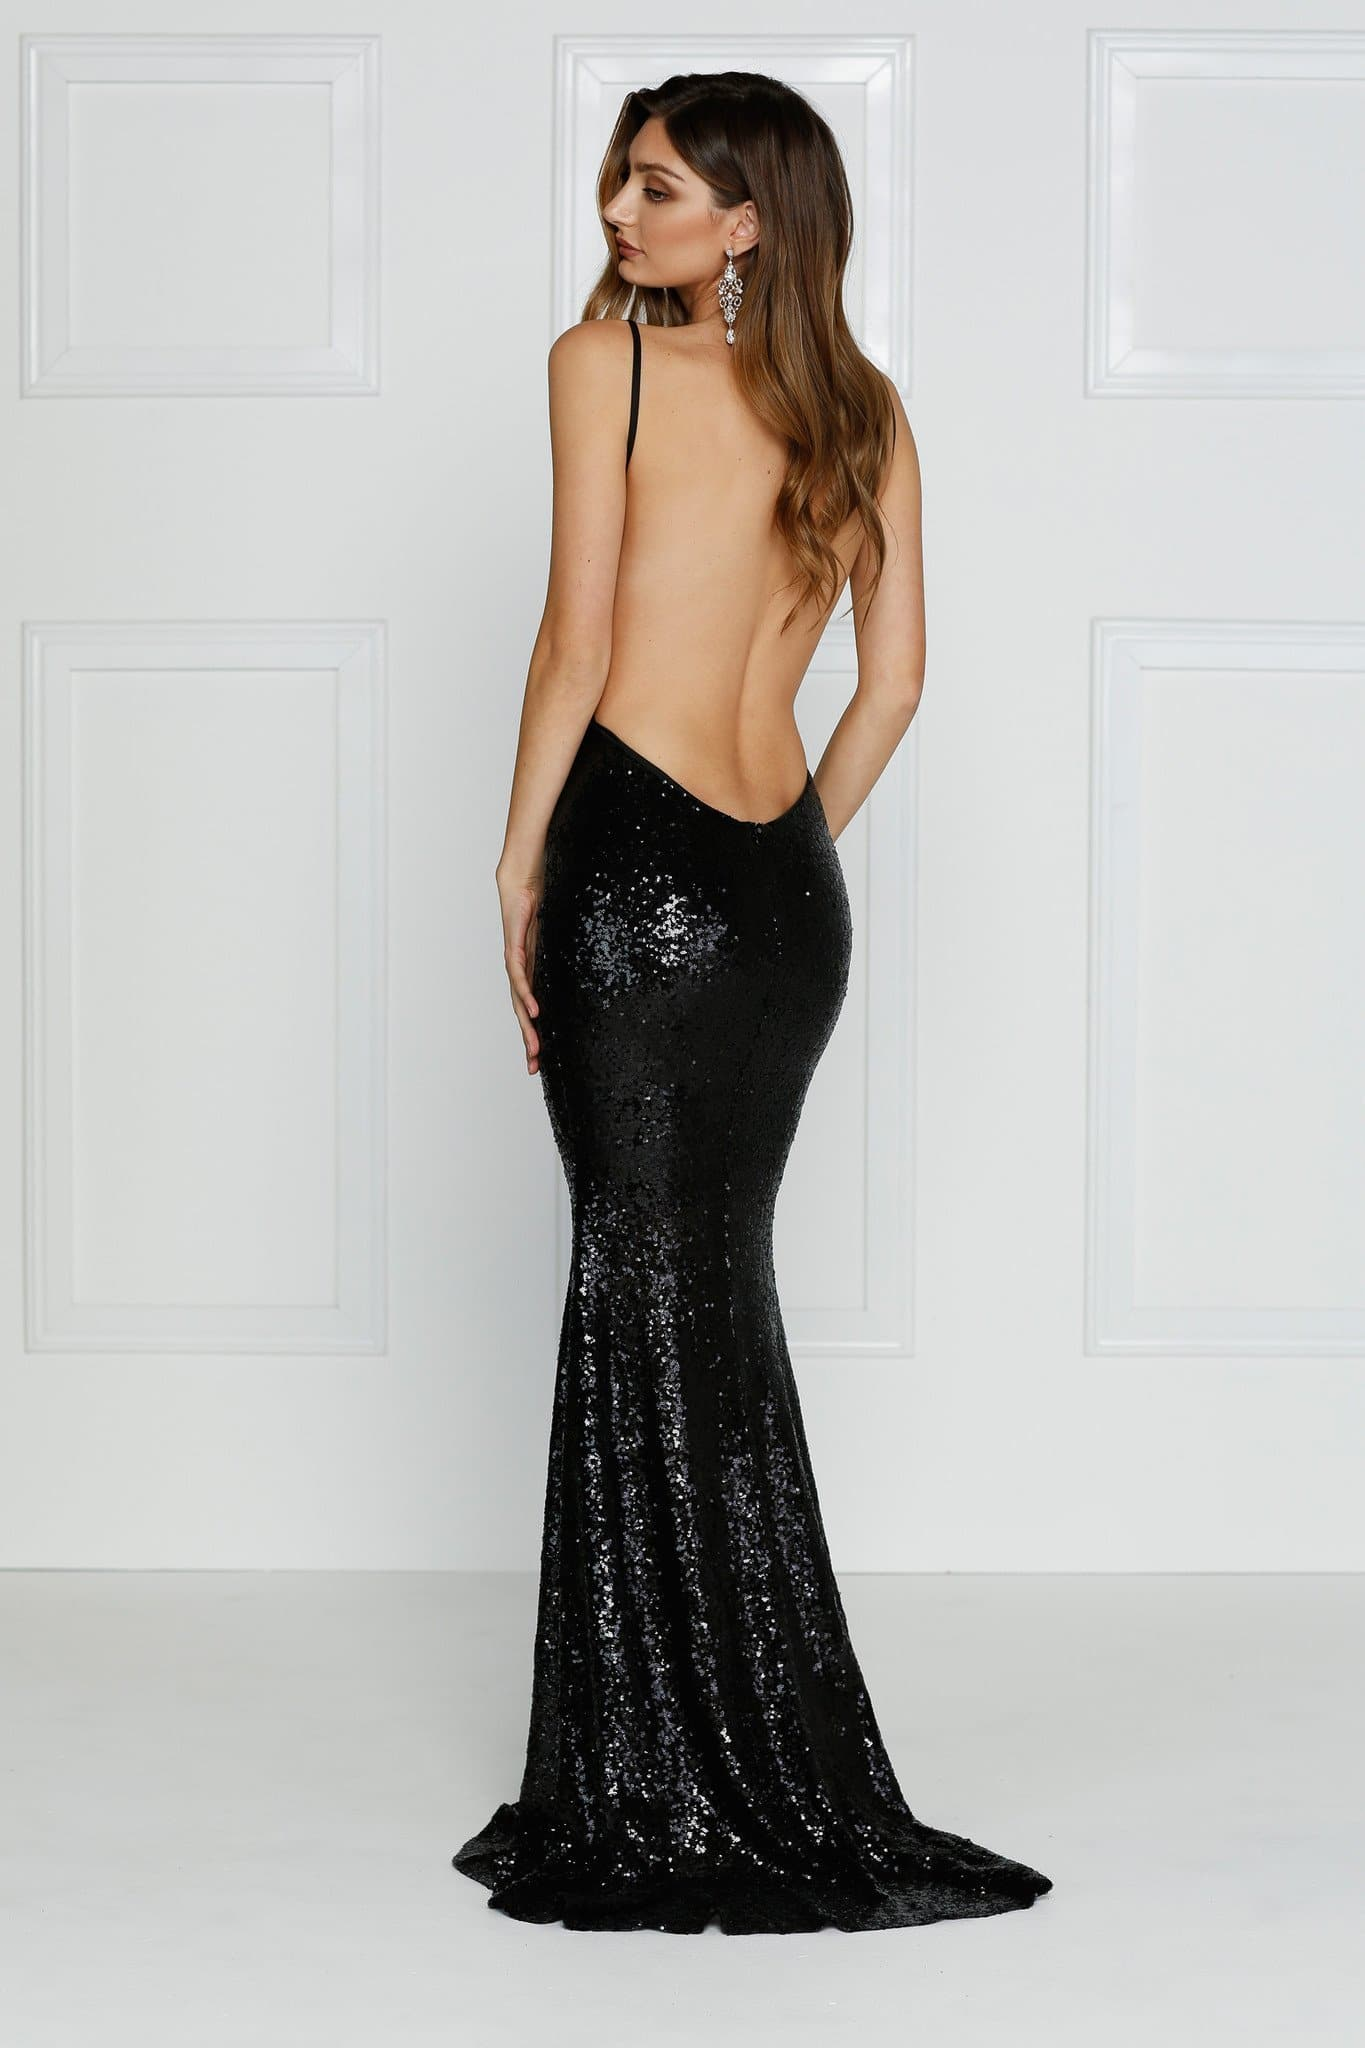 90ce2c464f37 Yassmine - Black Sequin Backless Gown with Plunge Neckline – A&N ...